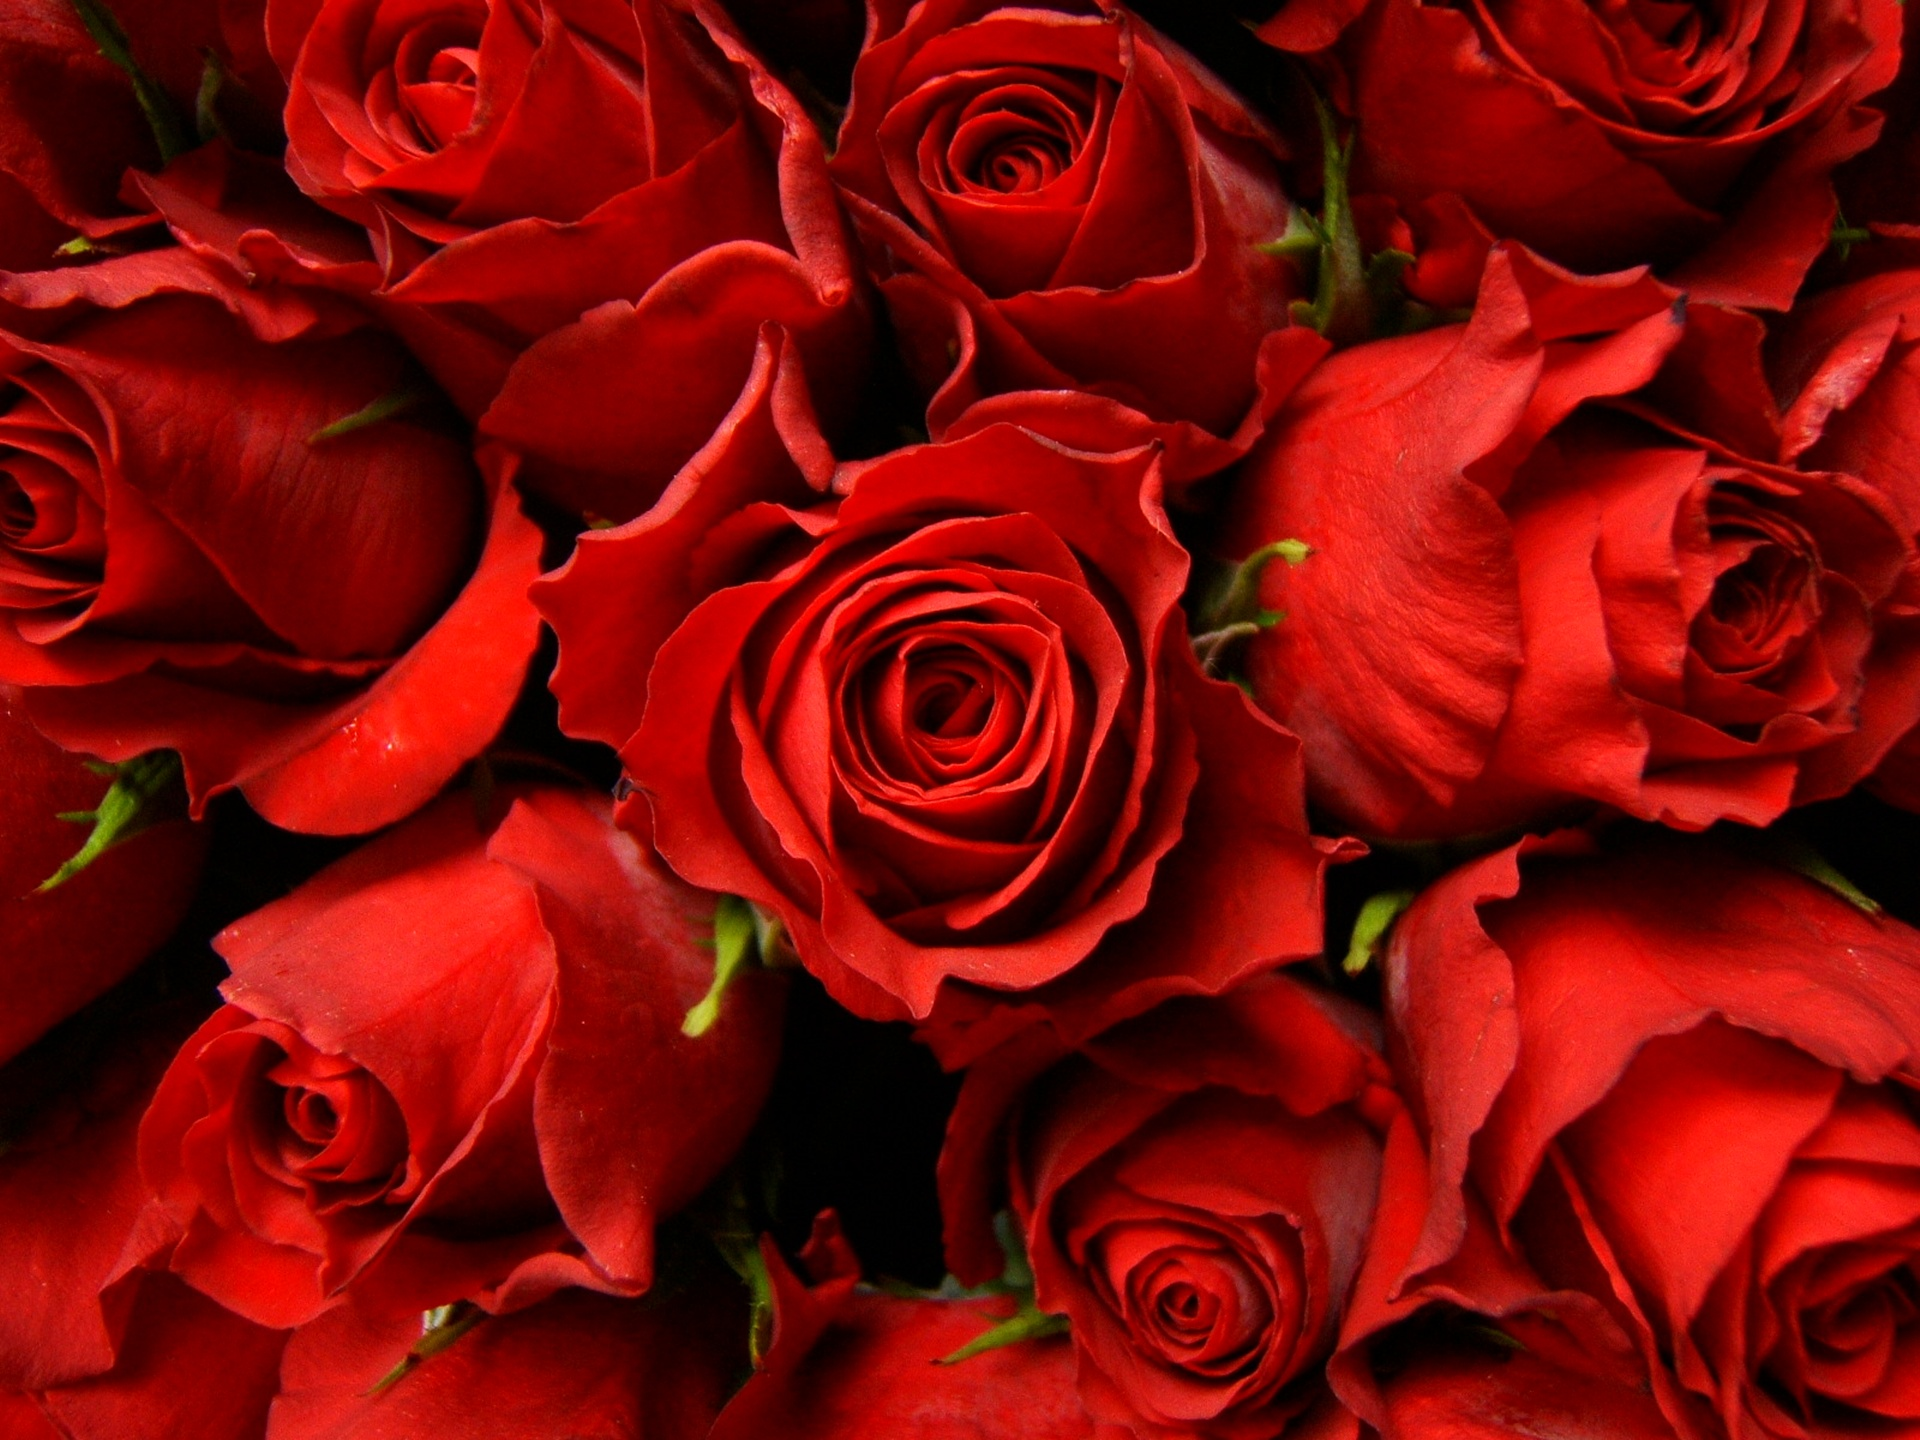 Wallpaper: Red Roses Picture Red Roses Picture - Wallpaper, High Definition, High Quality